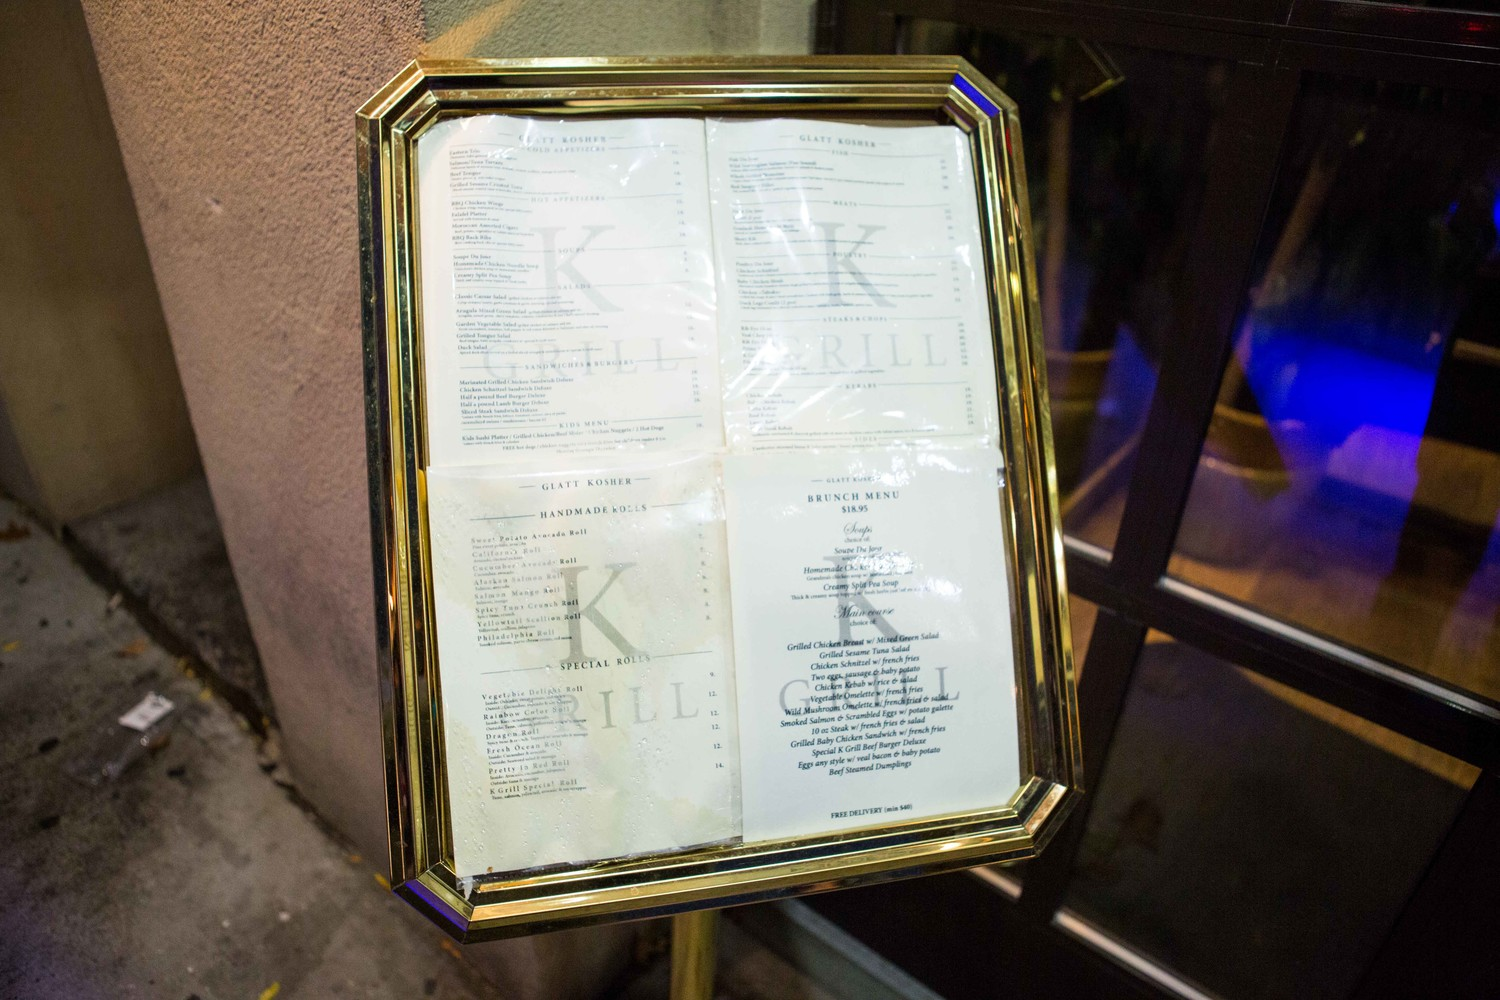 A menu outside of North Riverdale's K Grill House features an array of glatt kosher offerings — generous cuts of meat, grilled fish, even sushi. Dmitriy Berezovskiy, the establishment's owner, filed a lawsuit against his landlord, Moses Marx, and the local rabbinical council alleging they tried to drive him out of business.